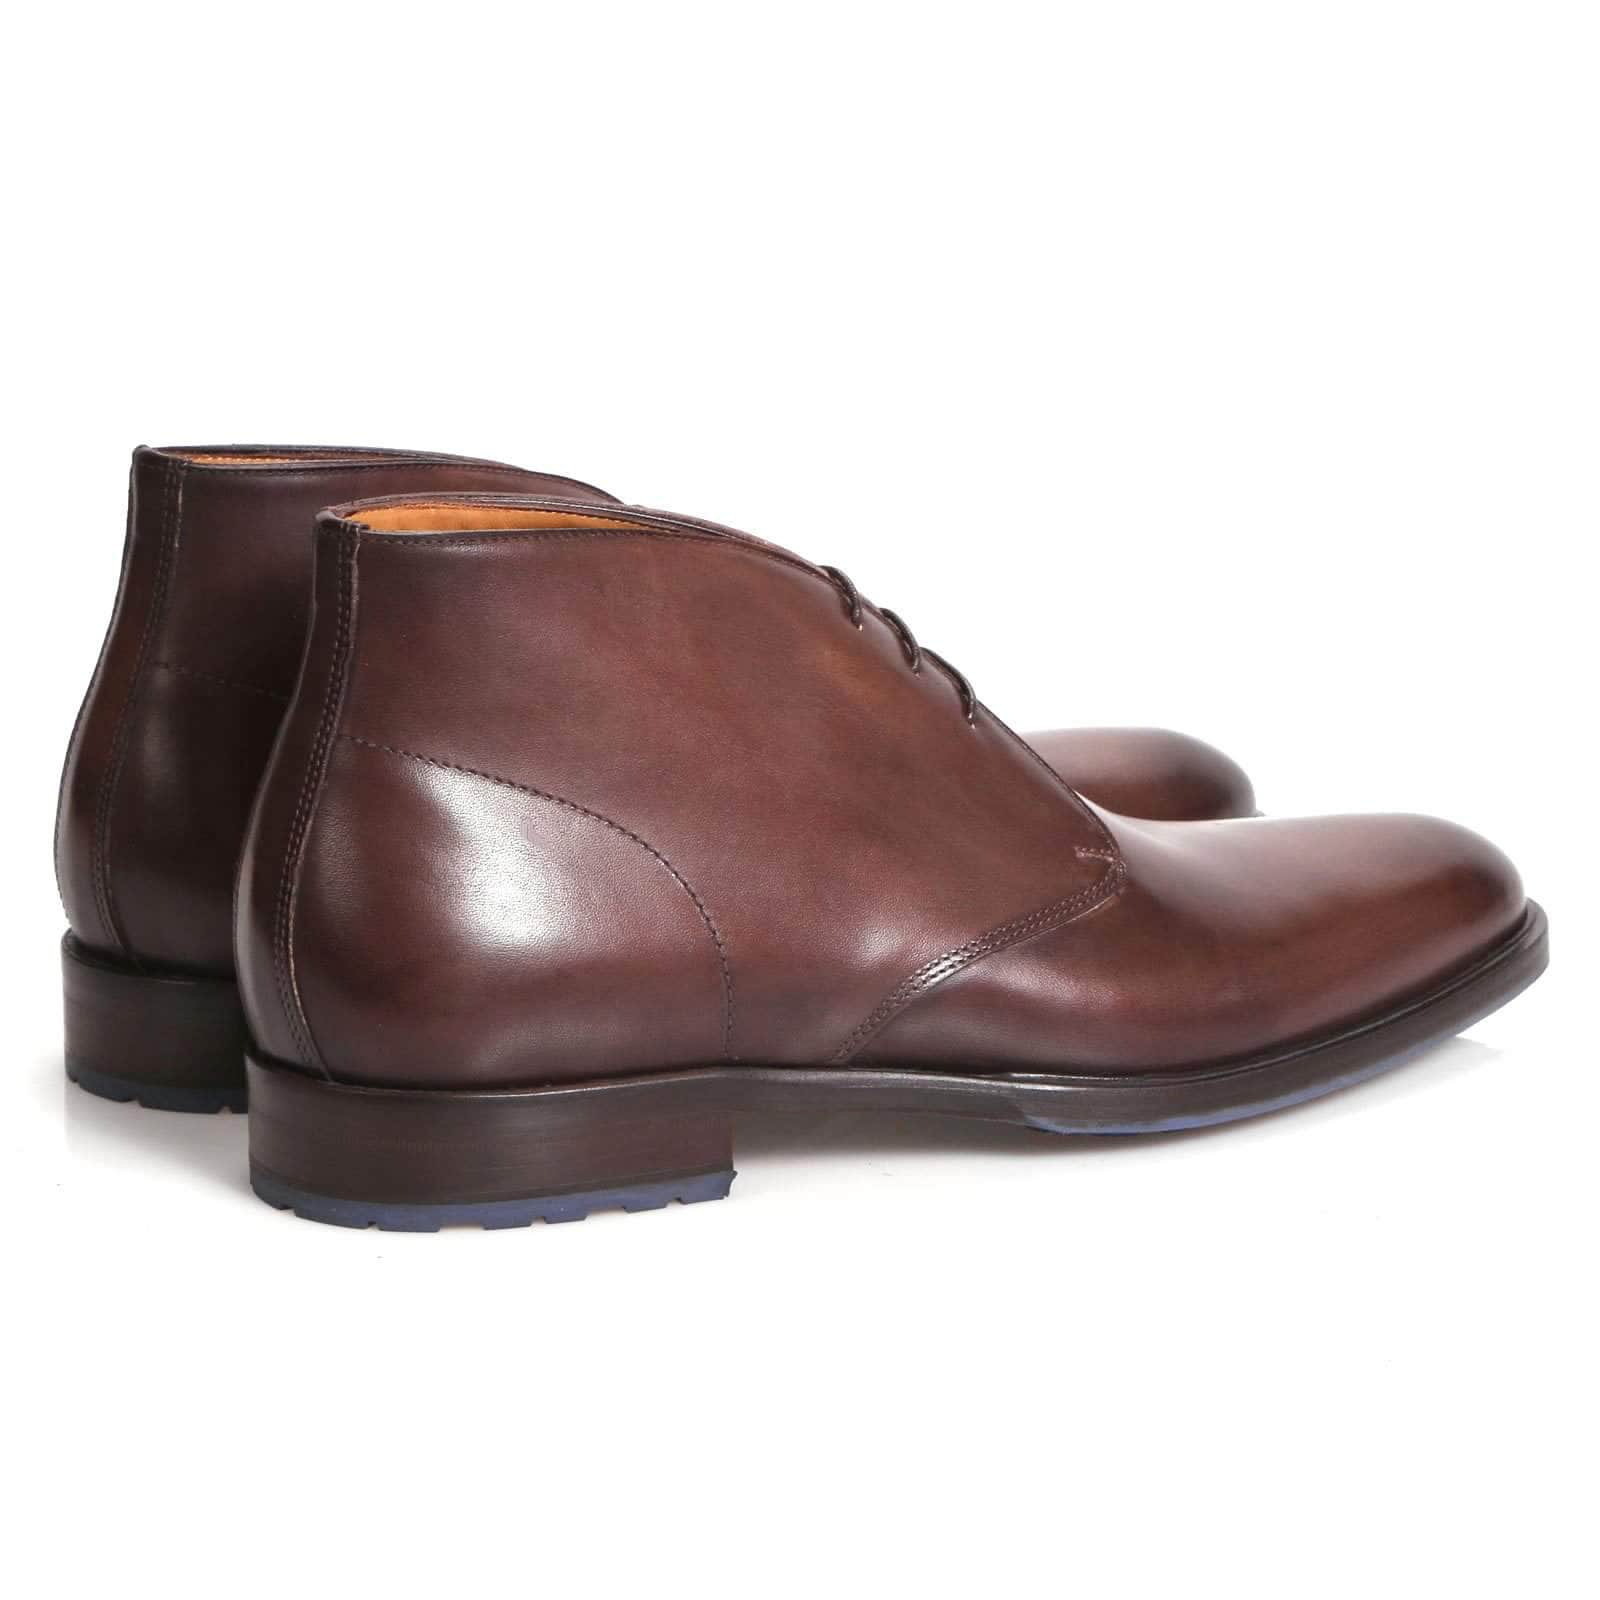 Mens Boots - Hamilton Chukka Boot R - Brown